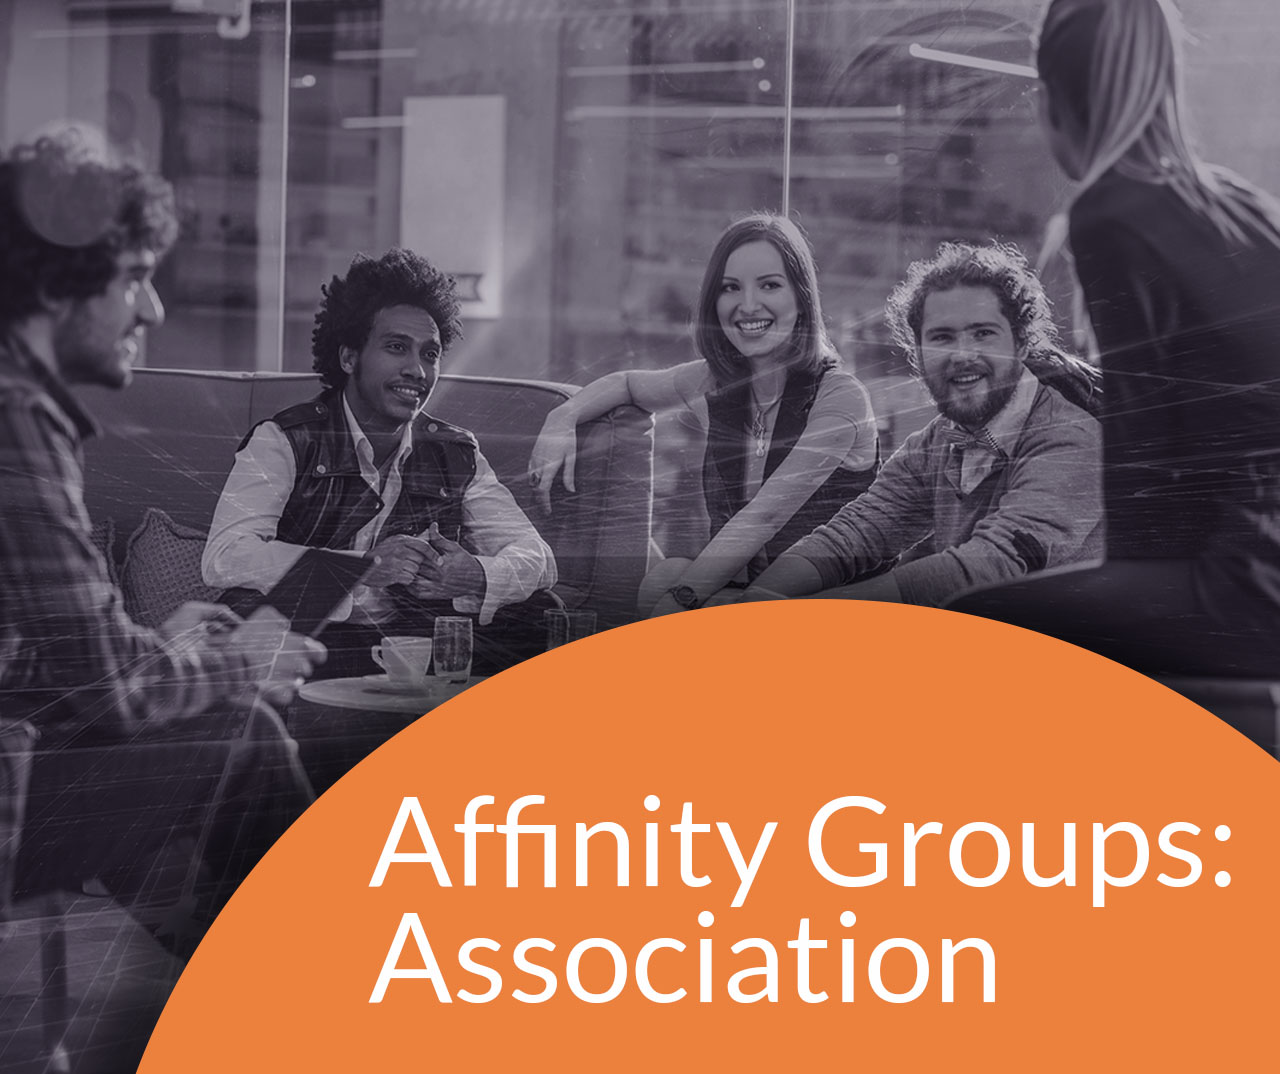 AFFINITY GROUP: ASSOCIATION